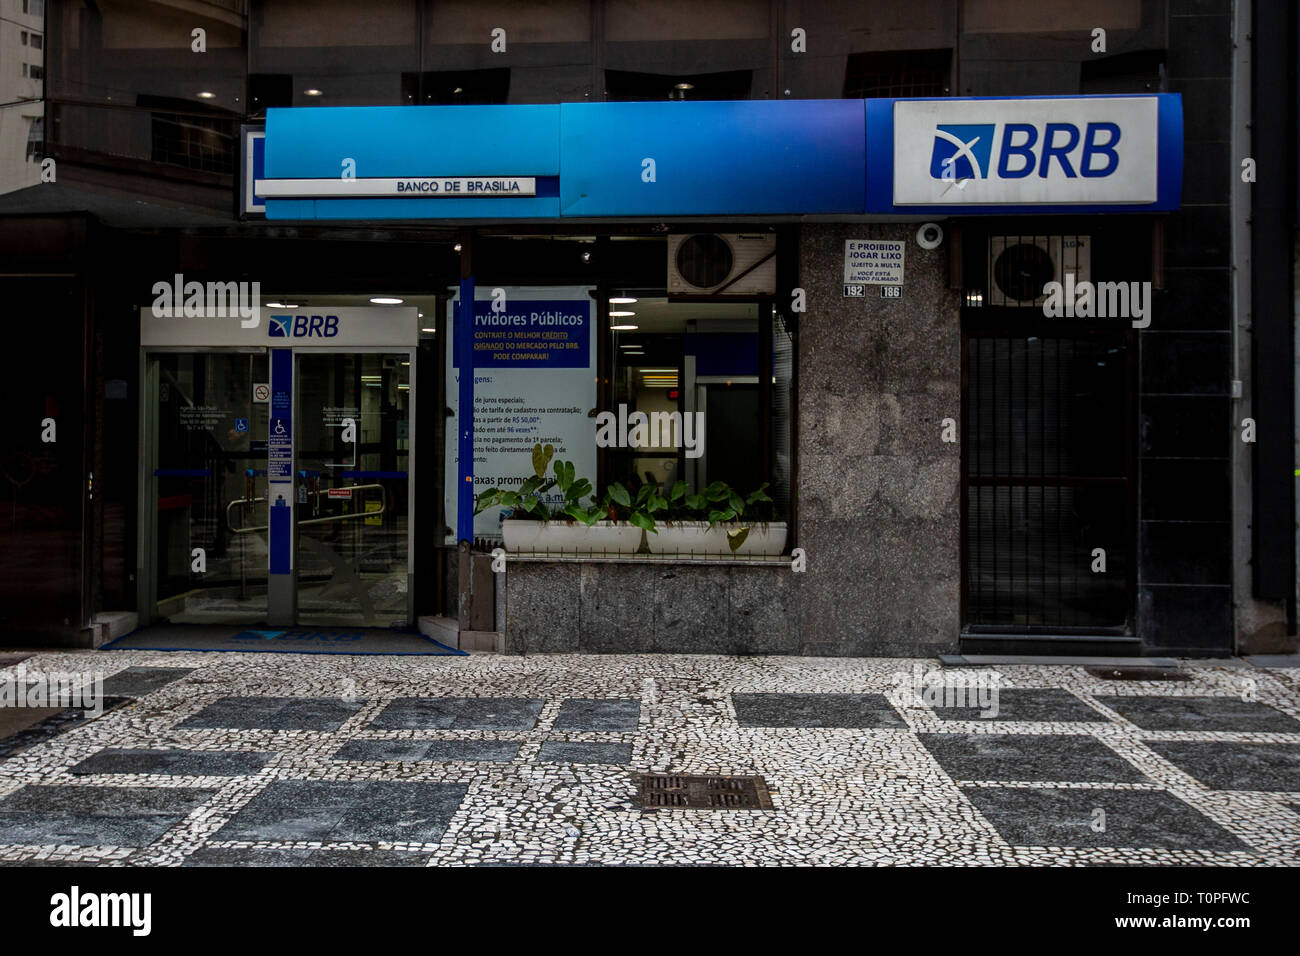 SP - Sao Paulo - 03/21/2019 - Bank of Brasilia Facade Sao Paulo - Facade of Banco de Brasilia in Jose Bonifacio street downtown of Sao Paulo. The bank and target of Operation Circus Maximus whose second phase was launched on the morning of Thursday 21, the operation aims to disrupt a supposed criminal organization installed in the BRB since 2014. Photo: Suamy Beydoun / AGIF - Stock Image